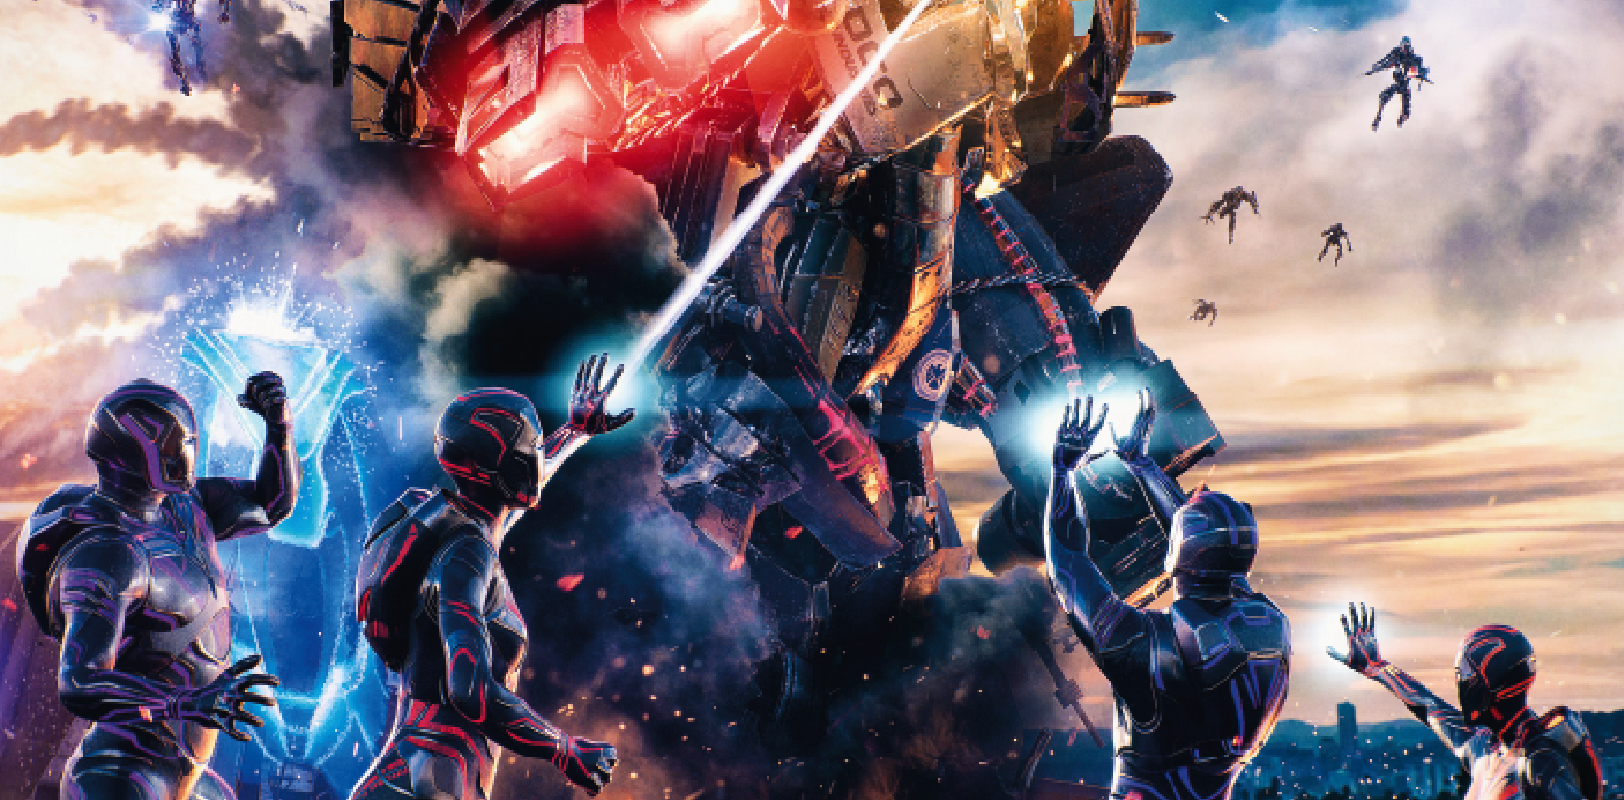 Avengers: Damage Control by ILMxLAB & The VOID